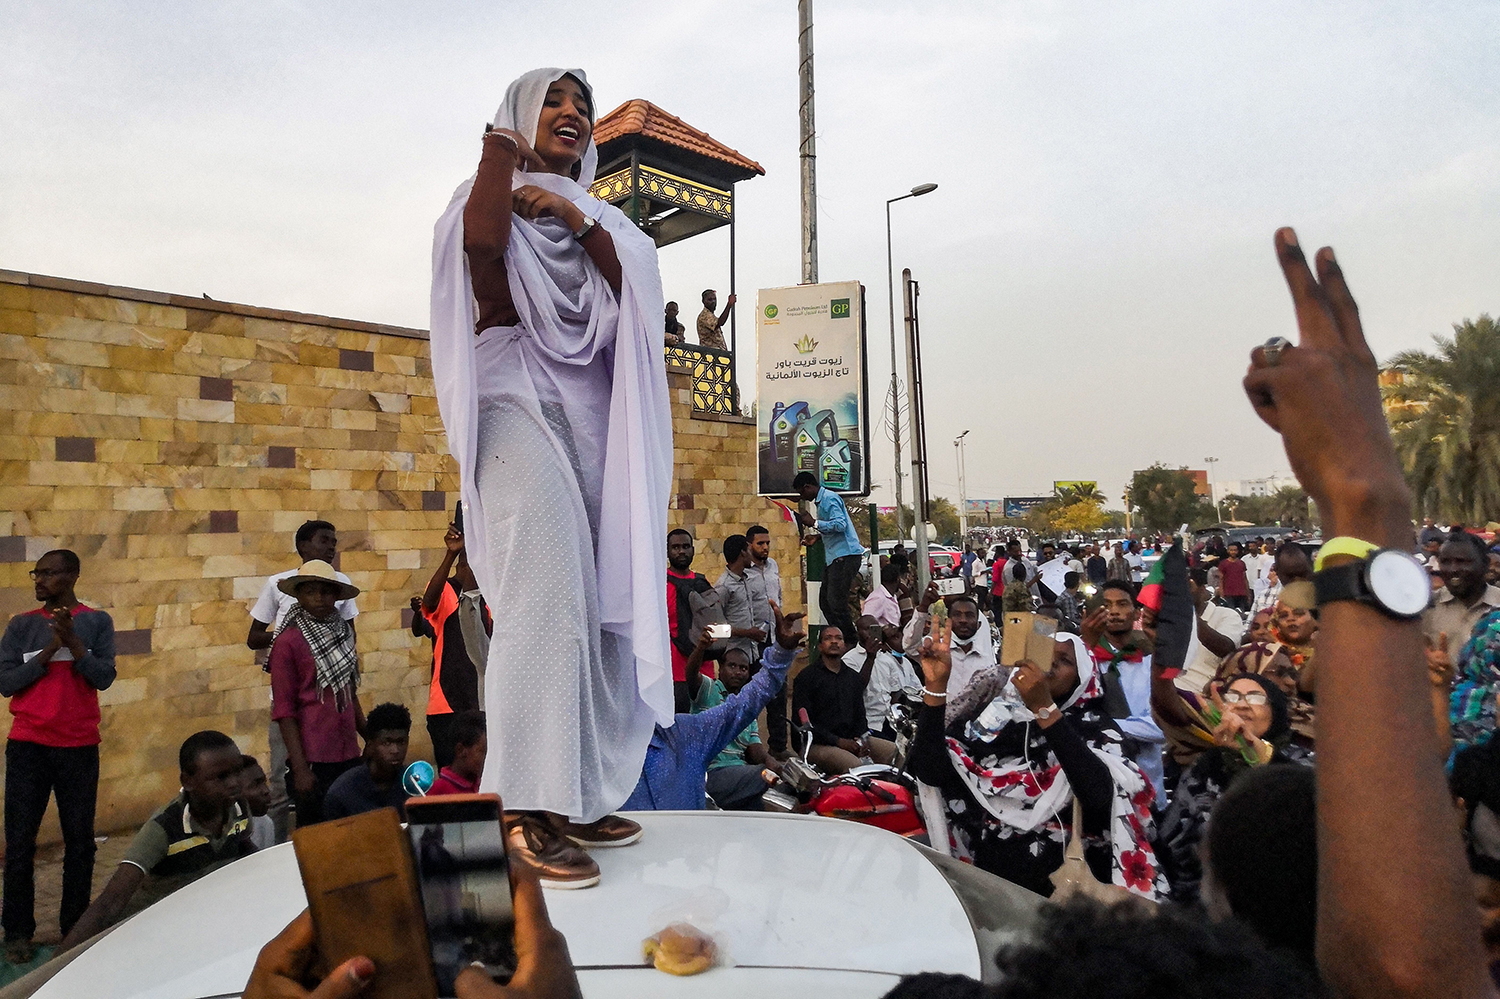 SUDAN | Alaa Salah, a Sudanese woman who propelled to fame after clips went viral of her leading chants against President Omar al-Bashir, addresses protesters during a demonstration in front of the military headquarters in the capital Khartoum on April 10. -/AFP/Getty Images